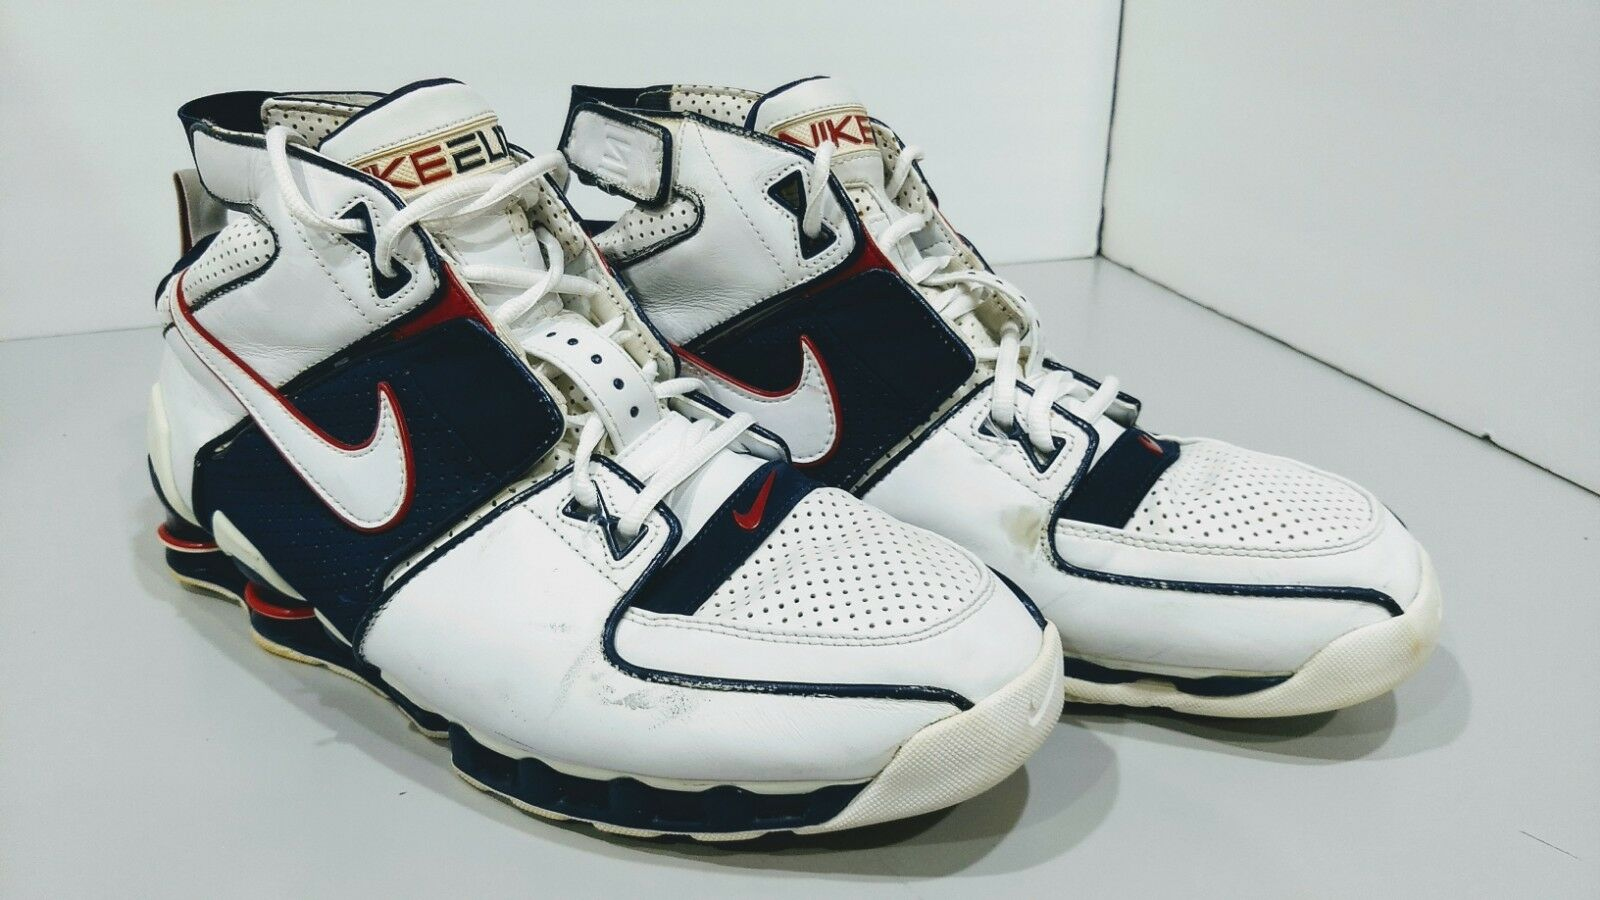 2004 NIKE 310375 142 ELITE SHOX White  bluee High Top Basketball SHOES size US 14